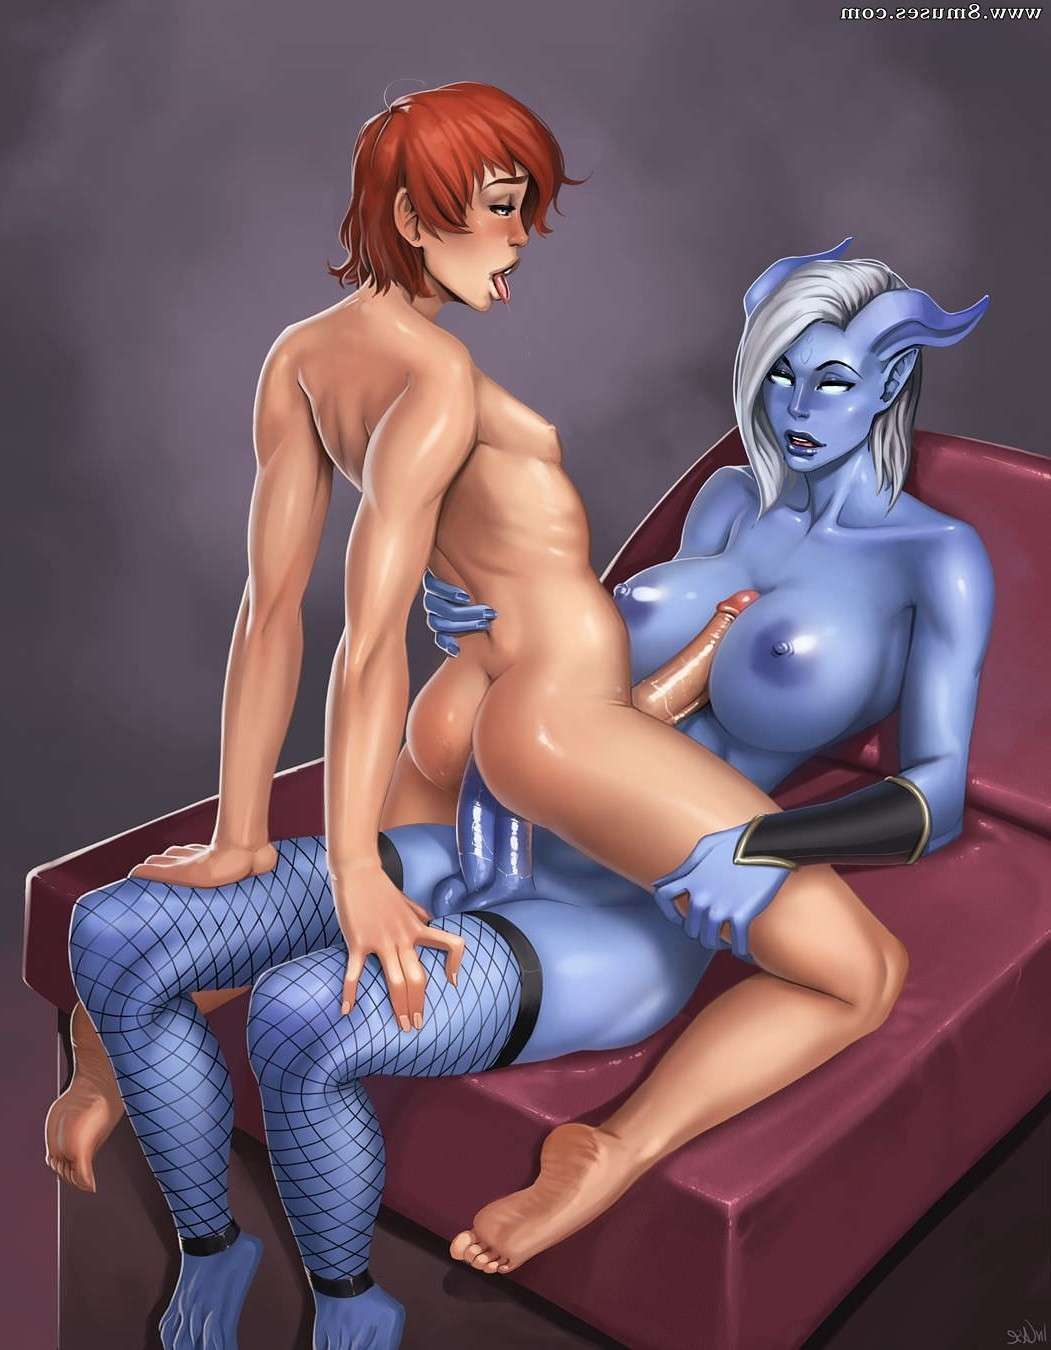 Incase-Comics/Artwork Artwork__8muses_-_Sex_and_Porn_Comics_80.jpg